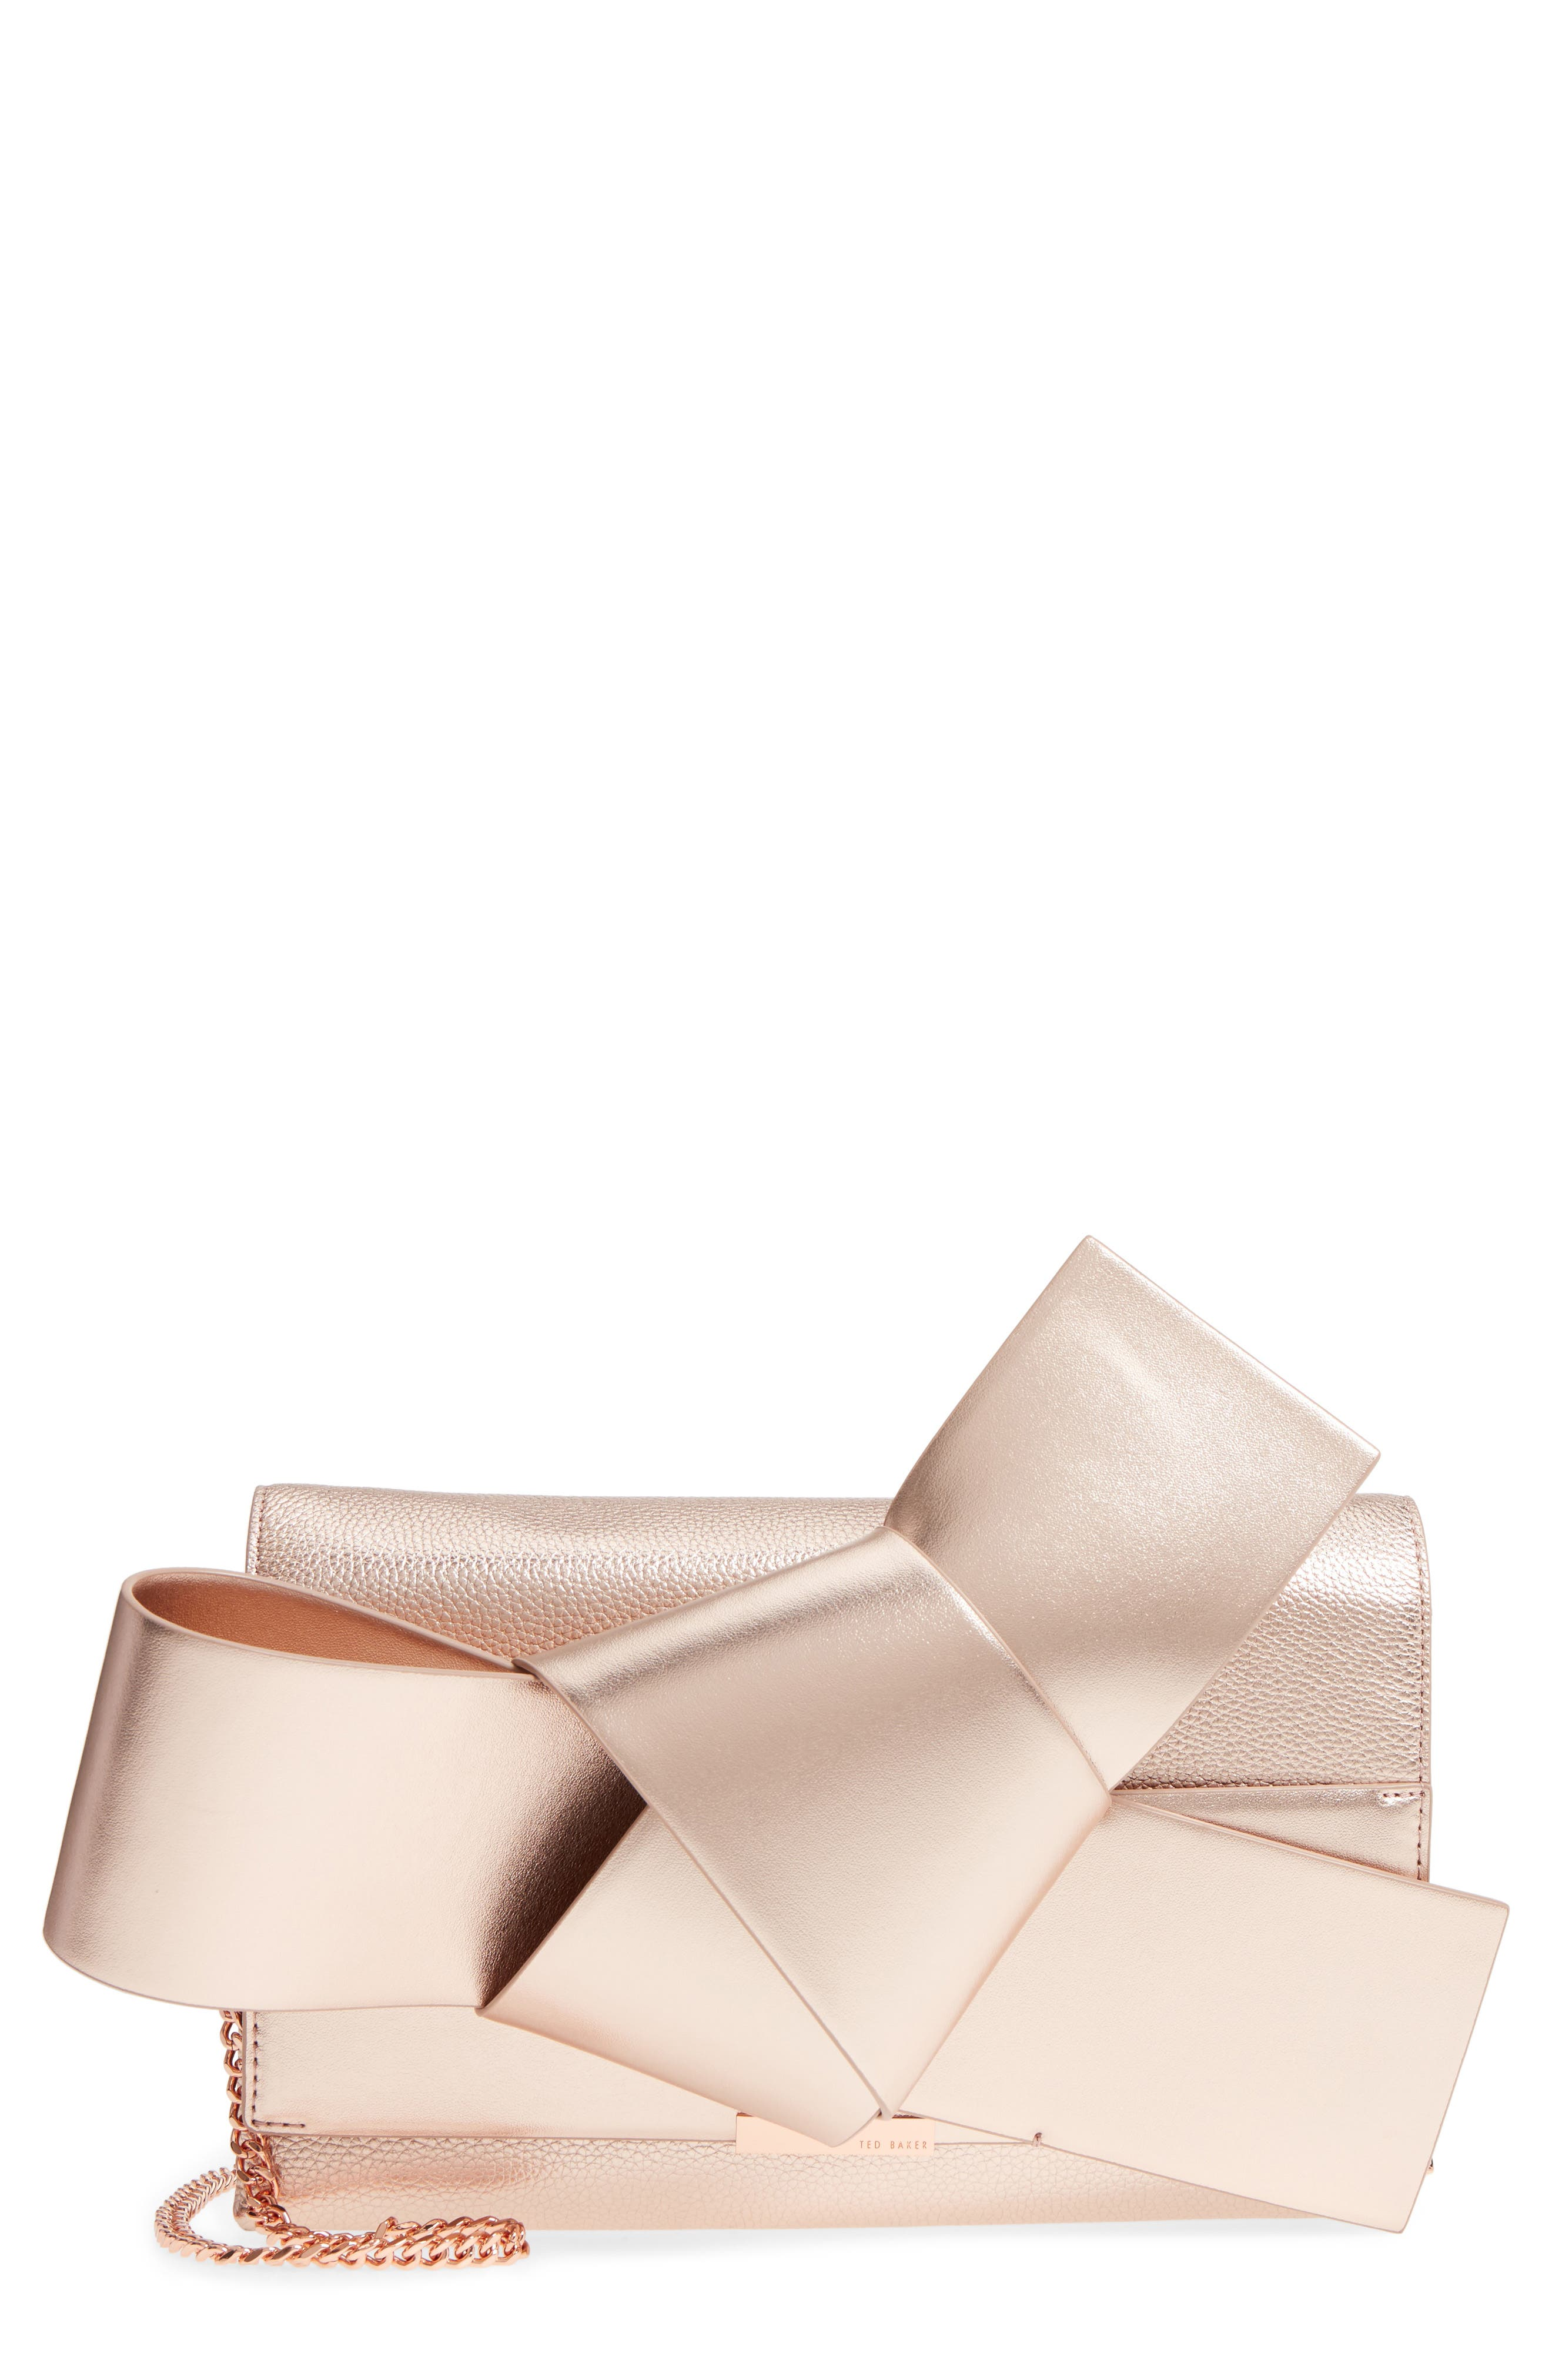 Ted Baker  KNOTTED BOW LEATHER CLUTCH - PINK